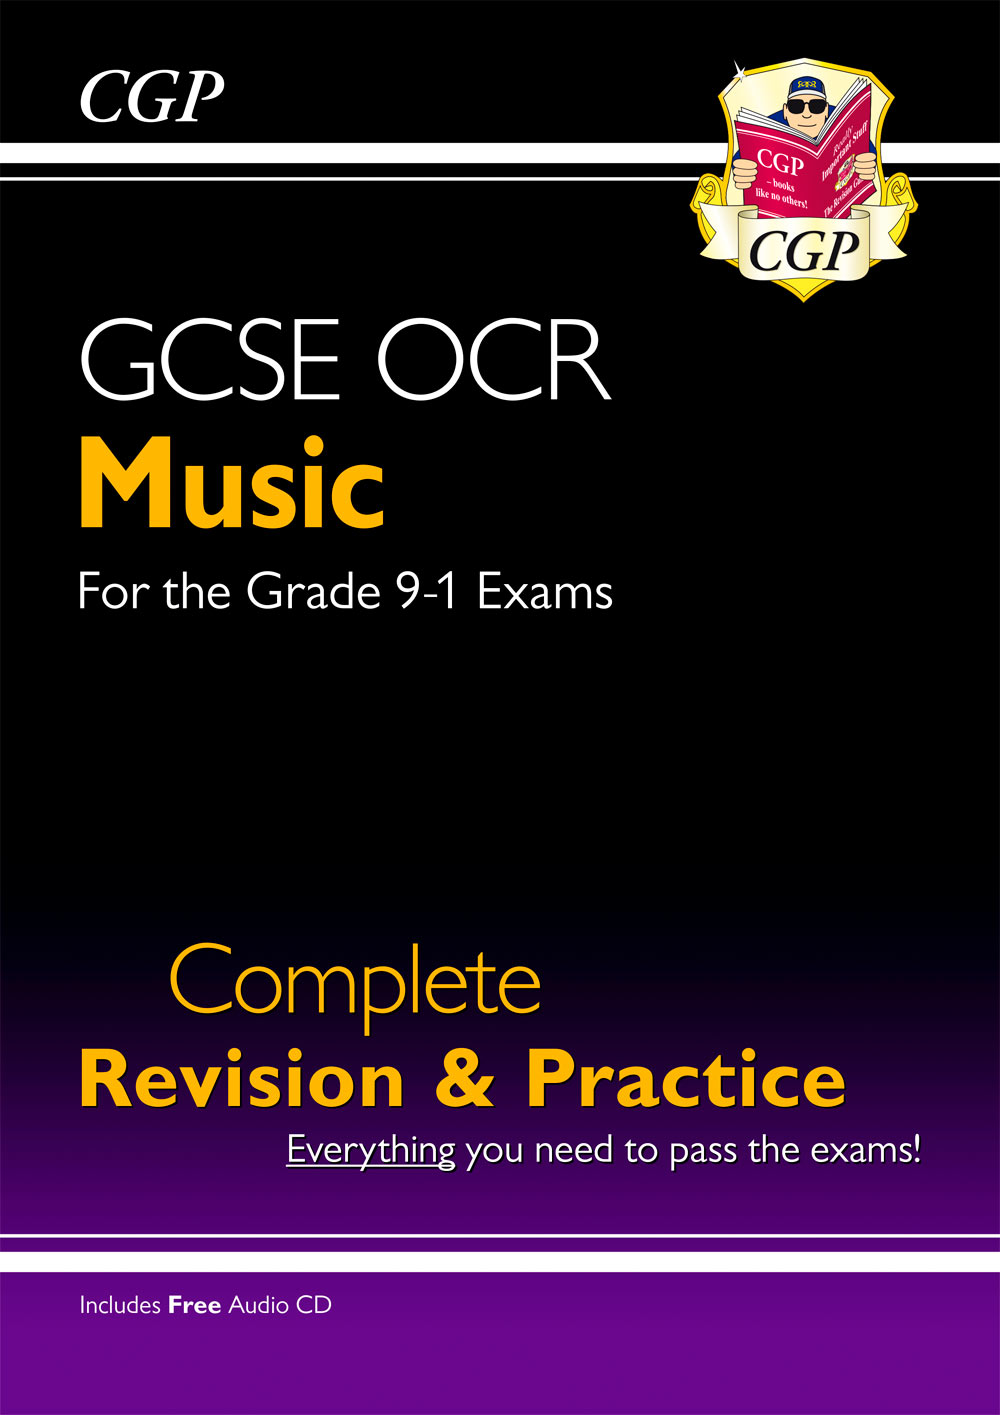 OCR - the leading award body for the UK in AS/A Level, GCSE and other qualifications